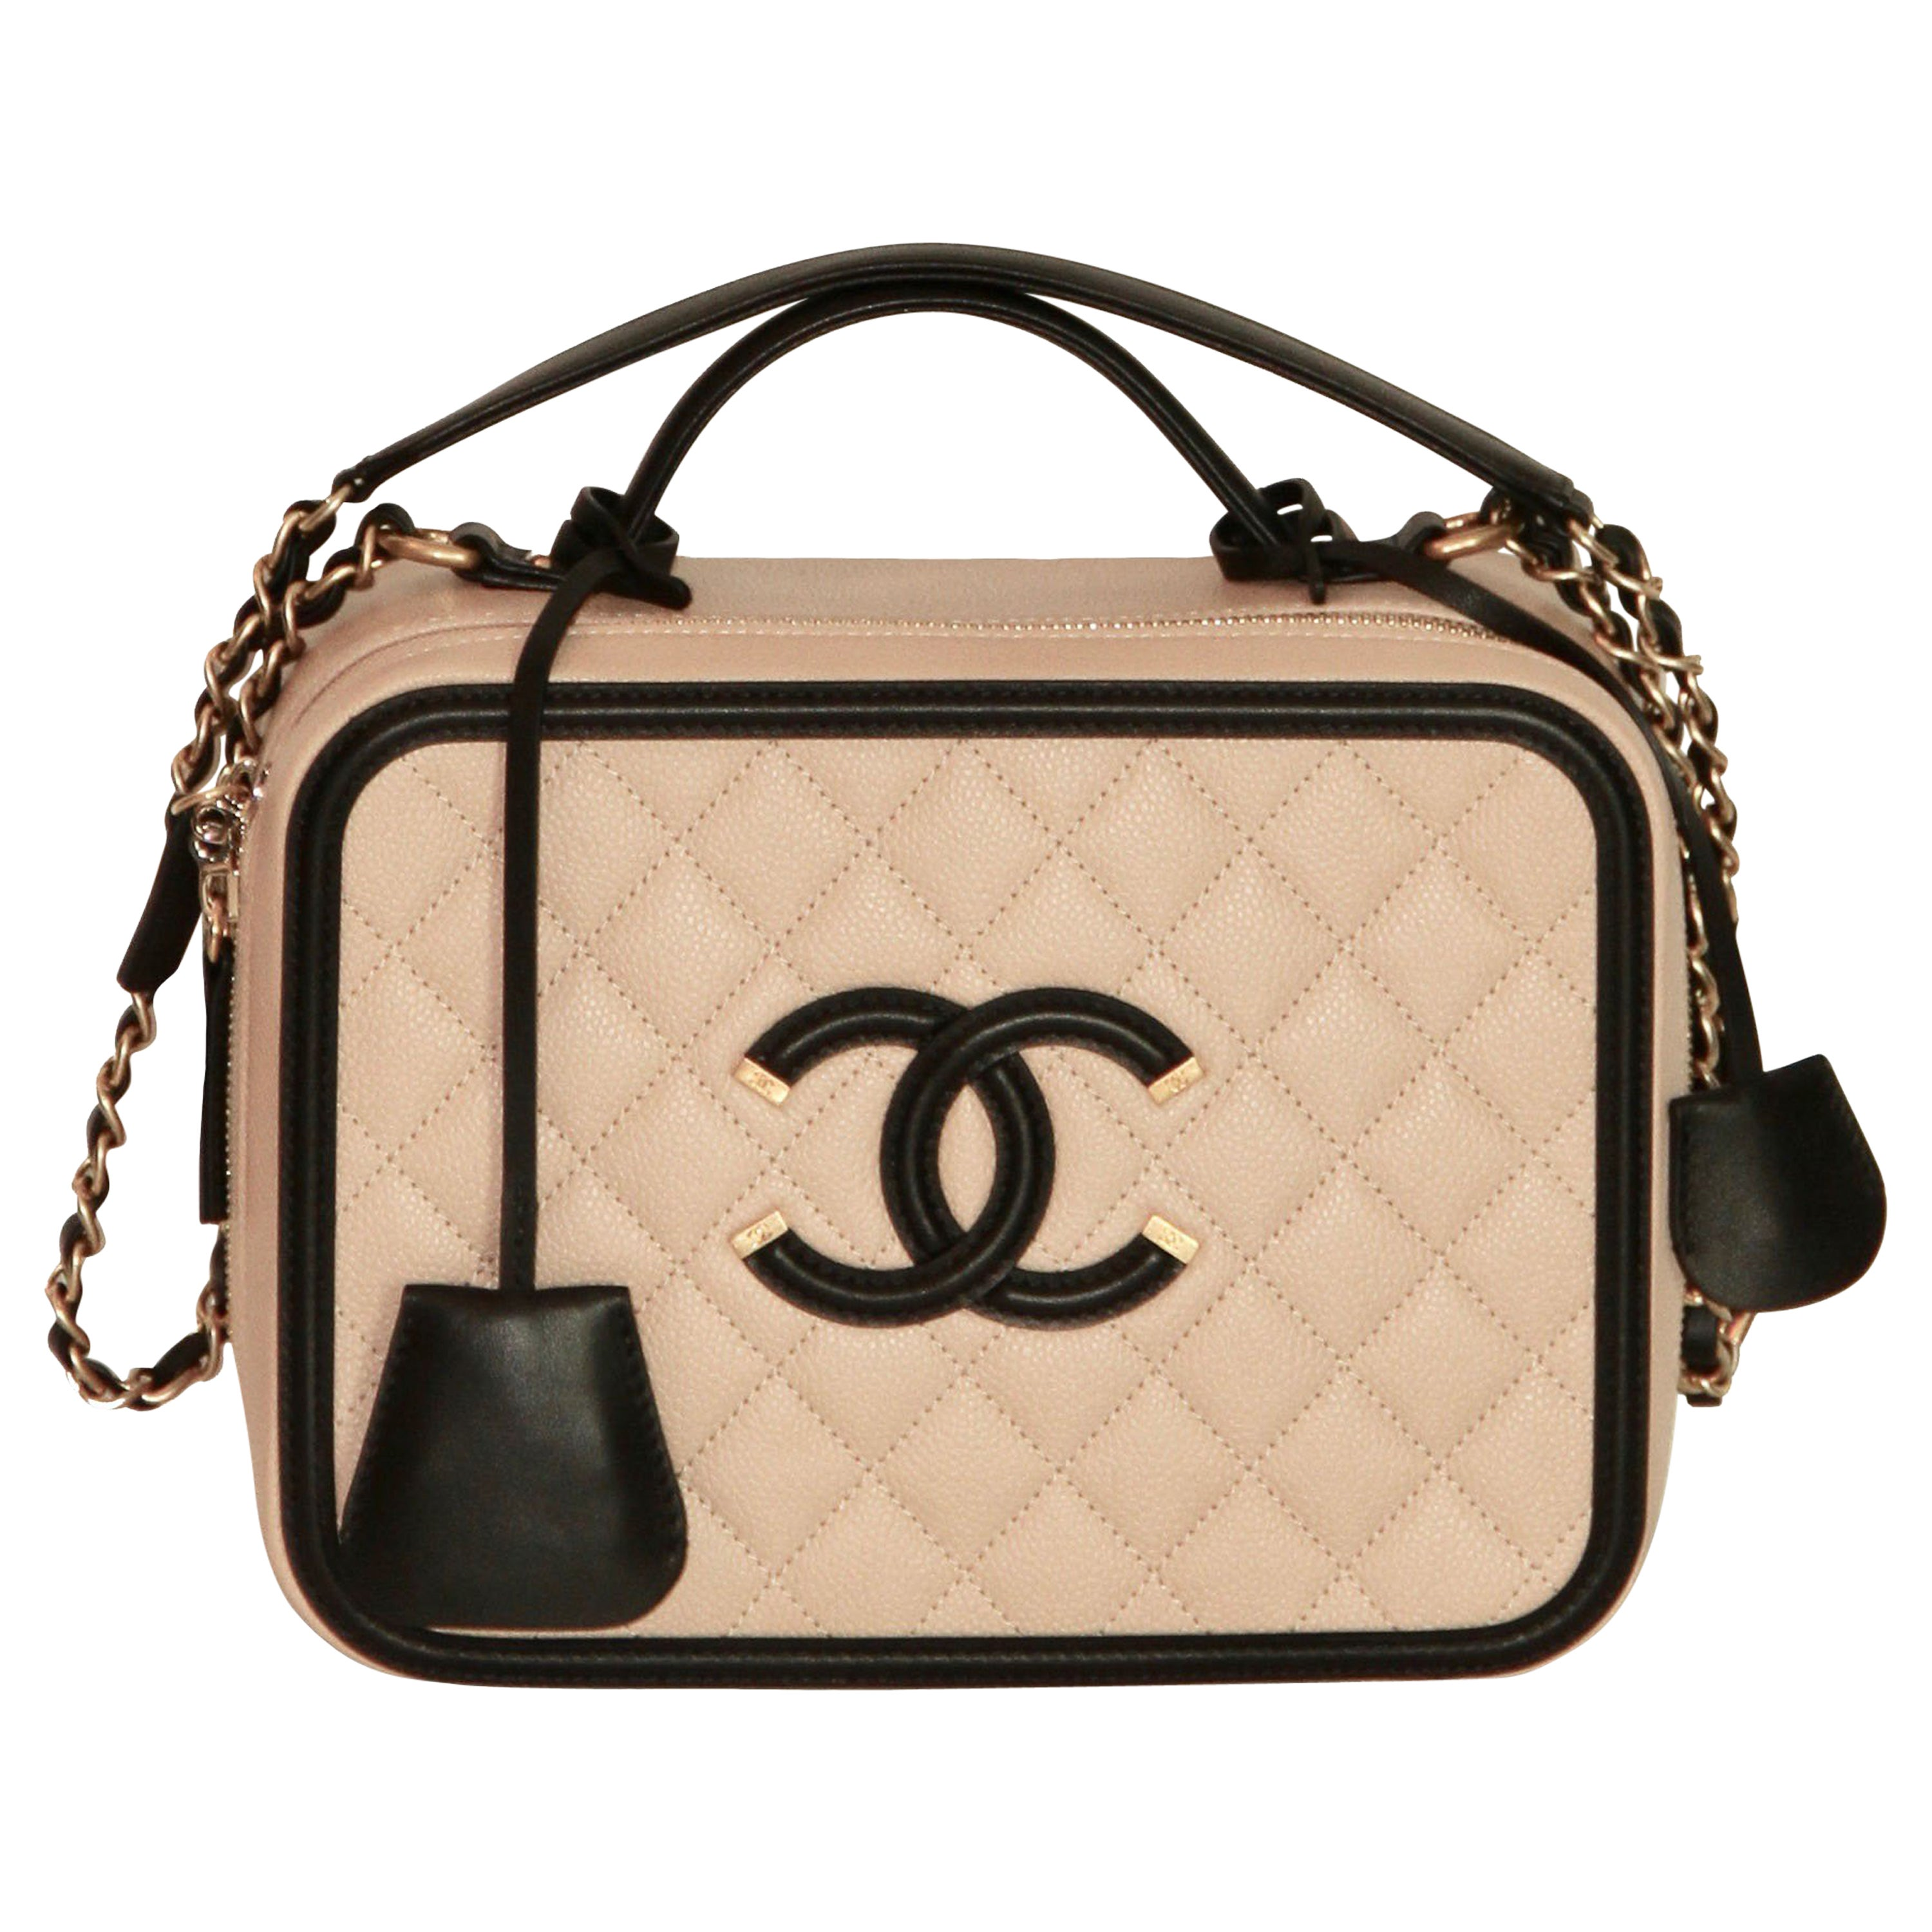 857becf54b1c CHANEL CC Filigree Vanity Case Nude   Black Grained Leather at 1stdibs